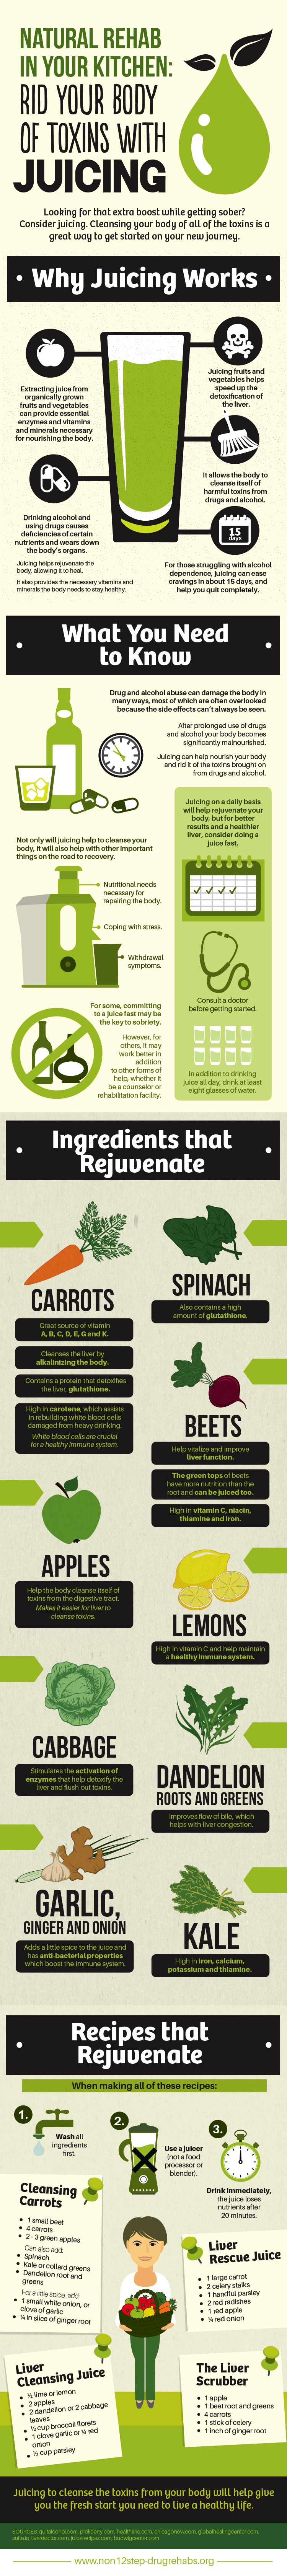 Natural rehab in your kitchen